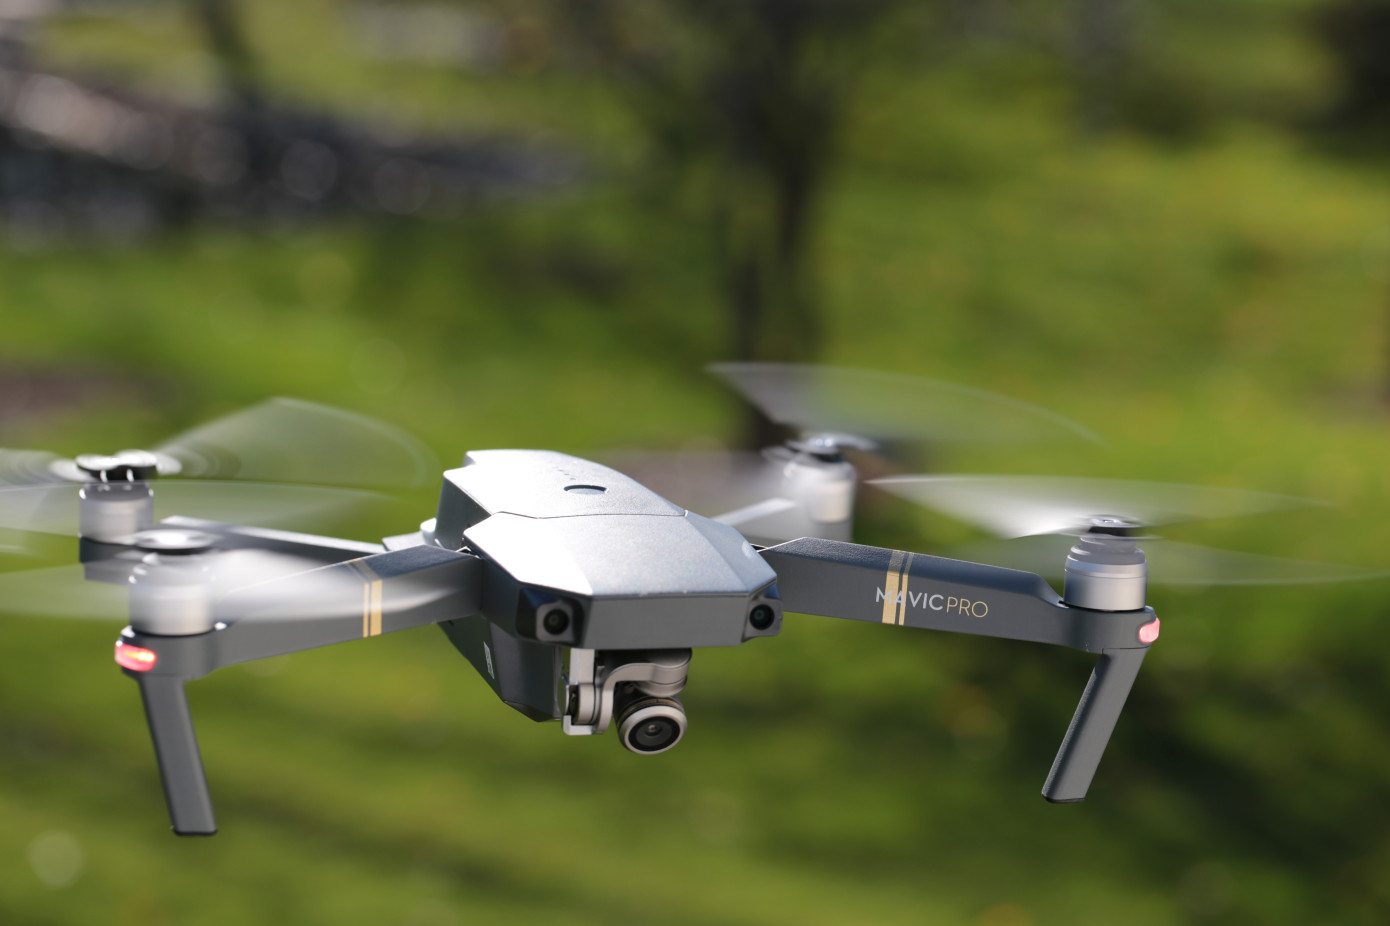 Age Restrictions Proposed For Drone Use In The UK